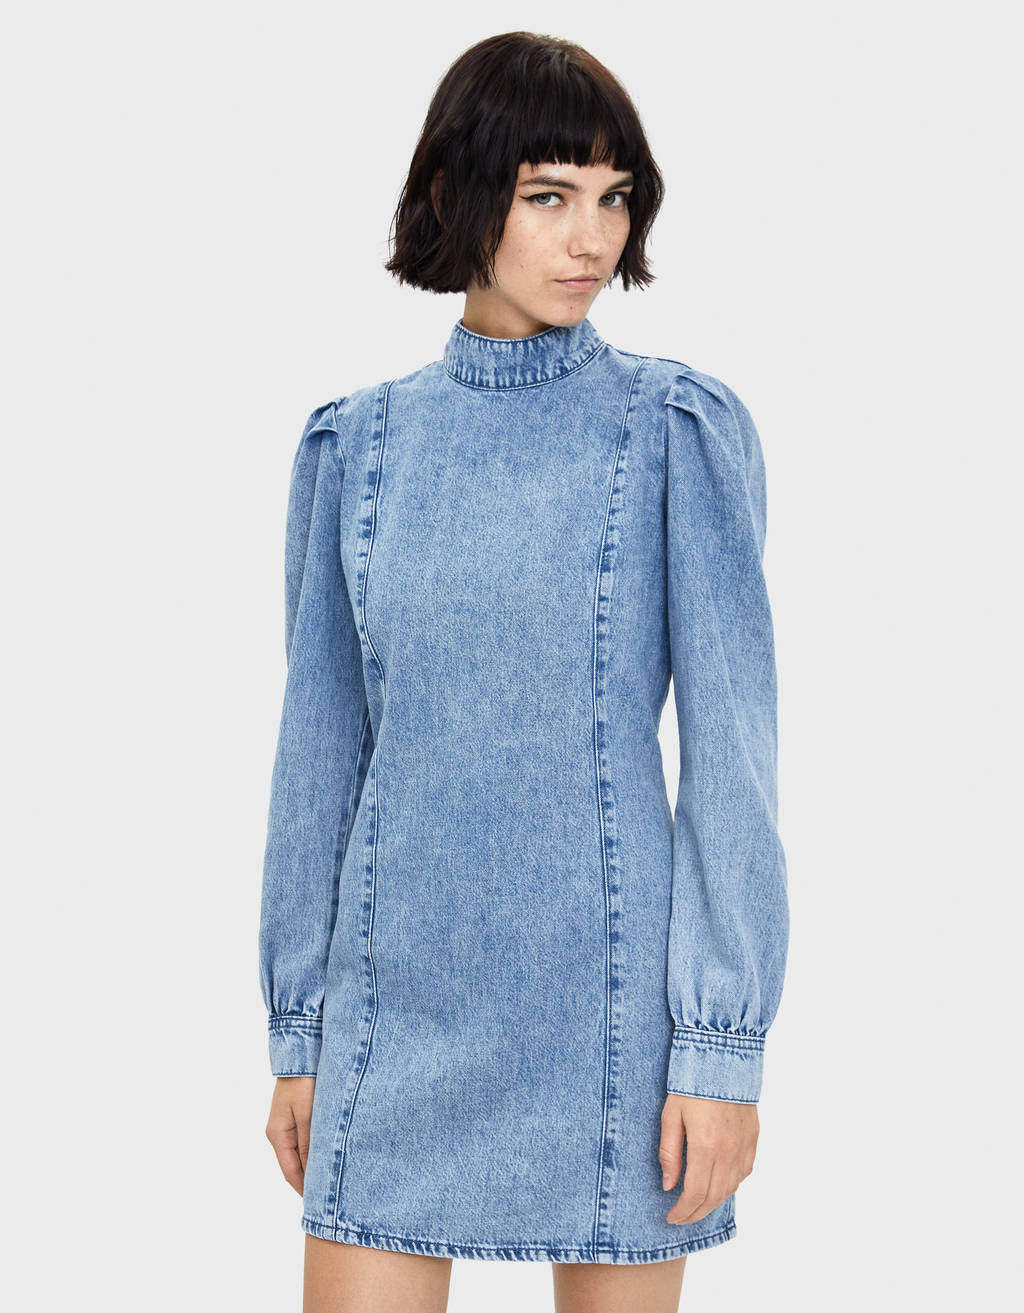 Robe denim à manches bouffantes